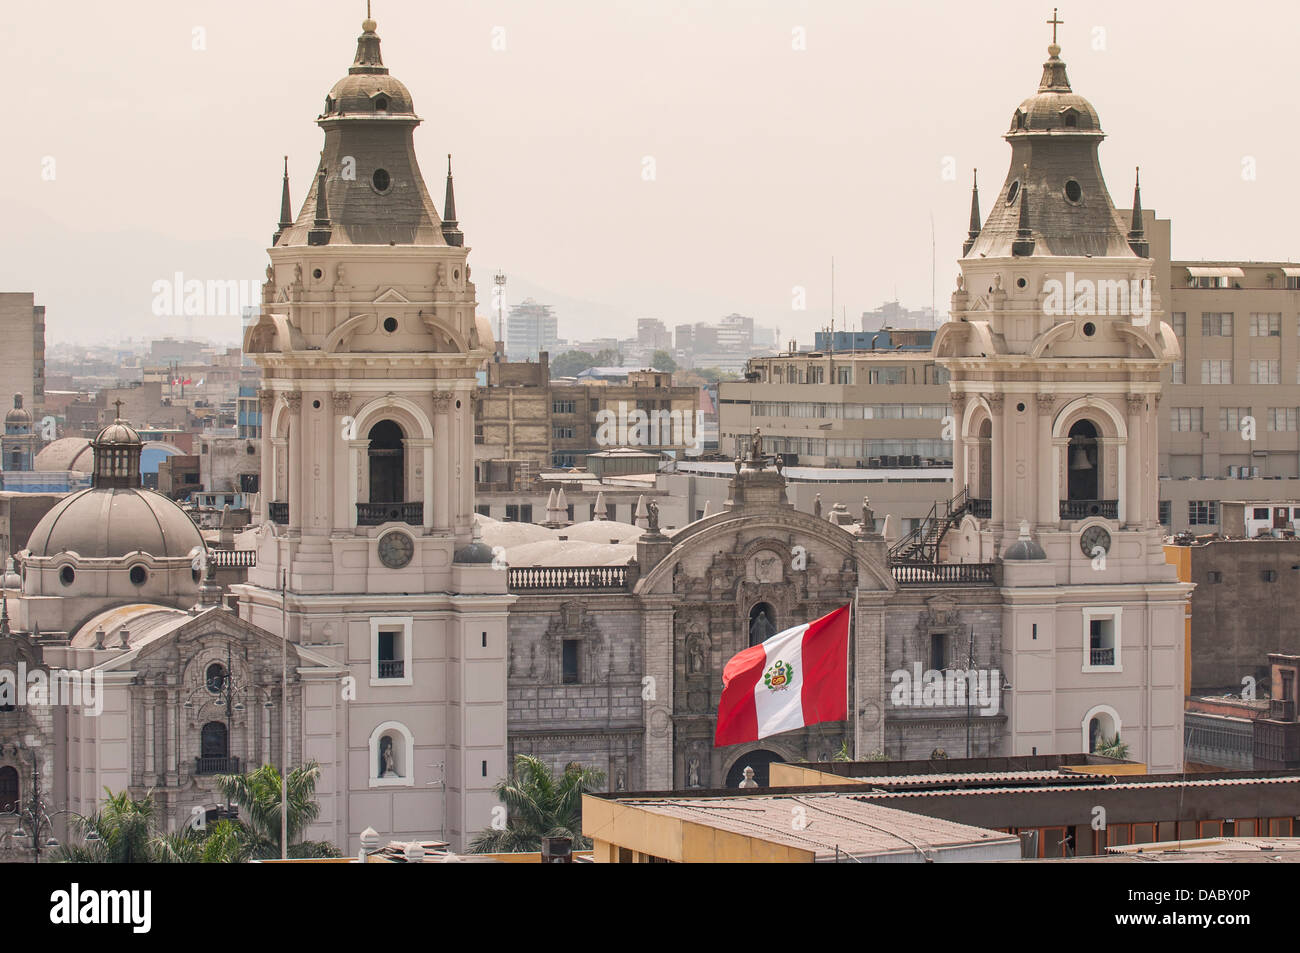 Cathedral of Lima from the steeple of The Church Santo Domingo, Lima, Peru, South America - Stock Image